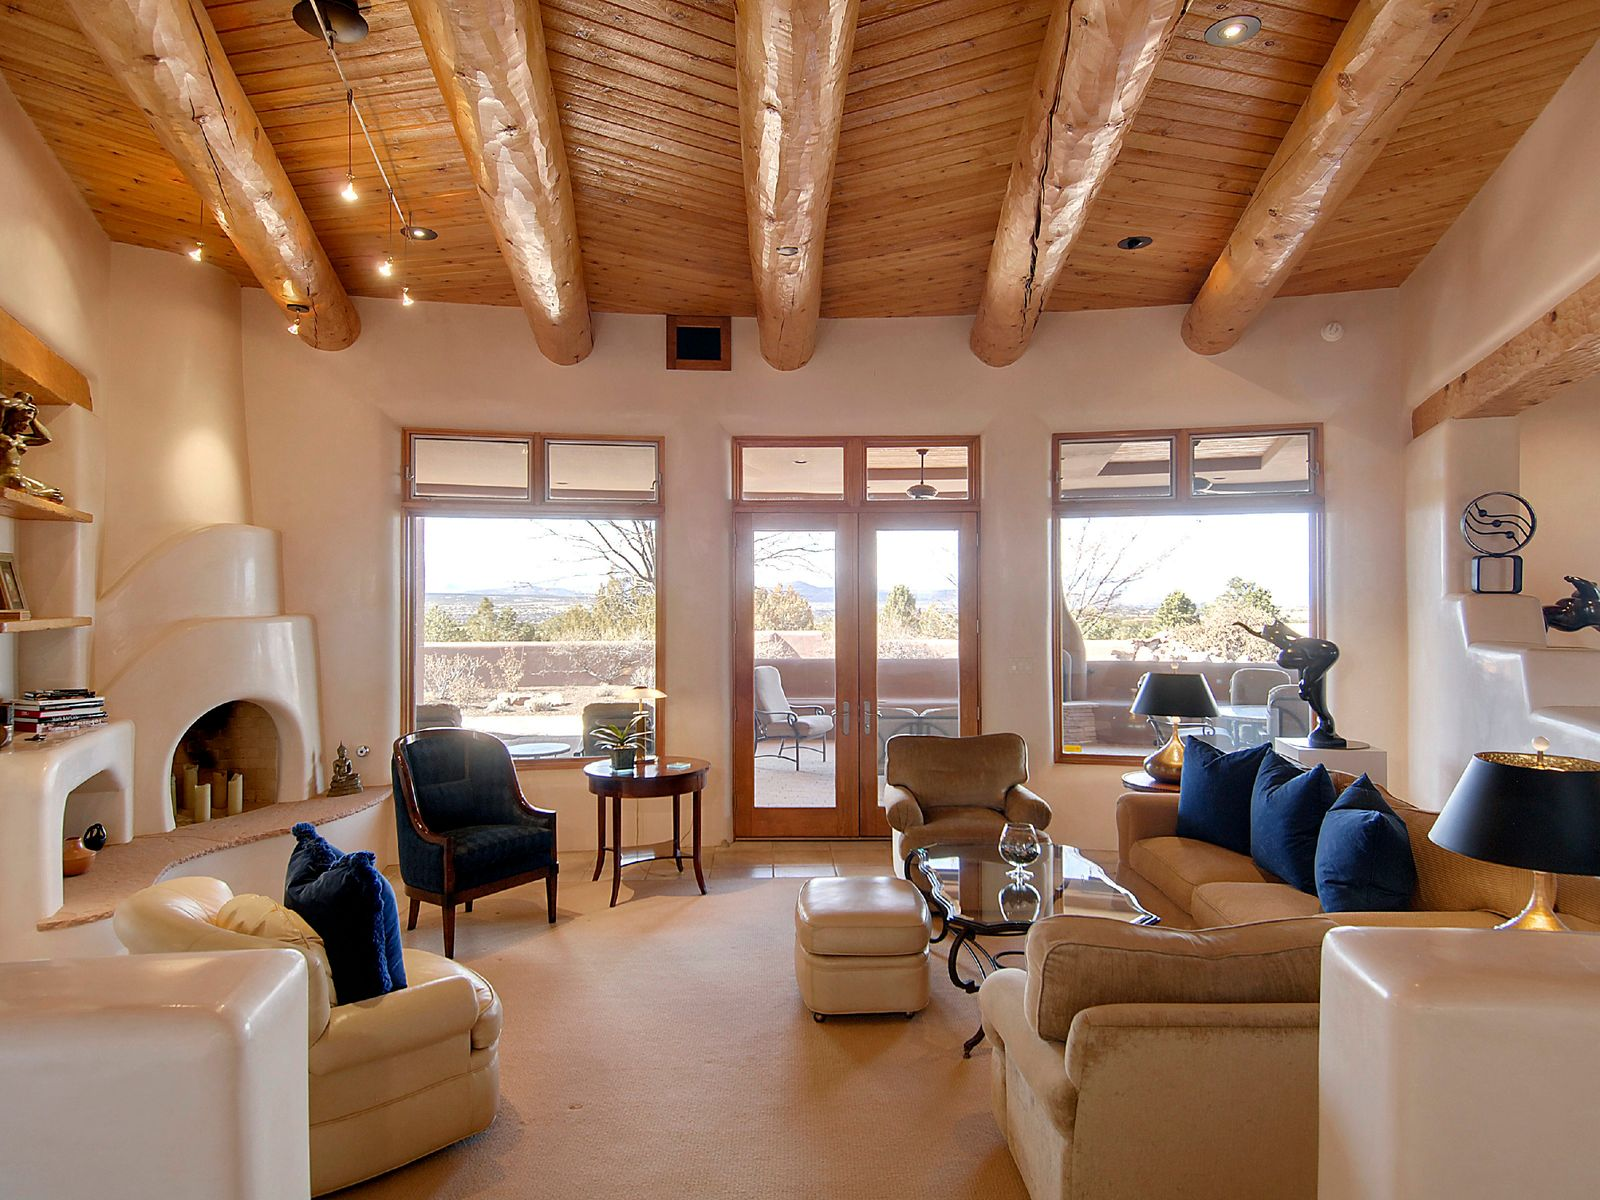 133 Calle Ventoso West, Santa Fe NM Single Family Home - Santa Fe Real Estate